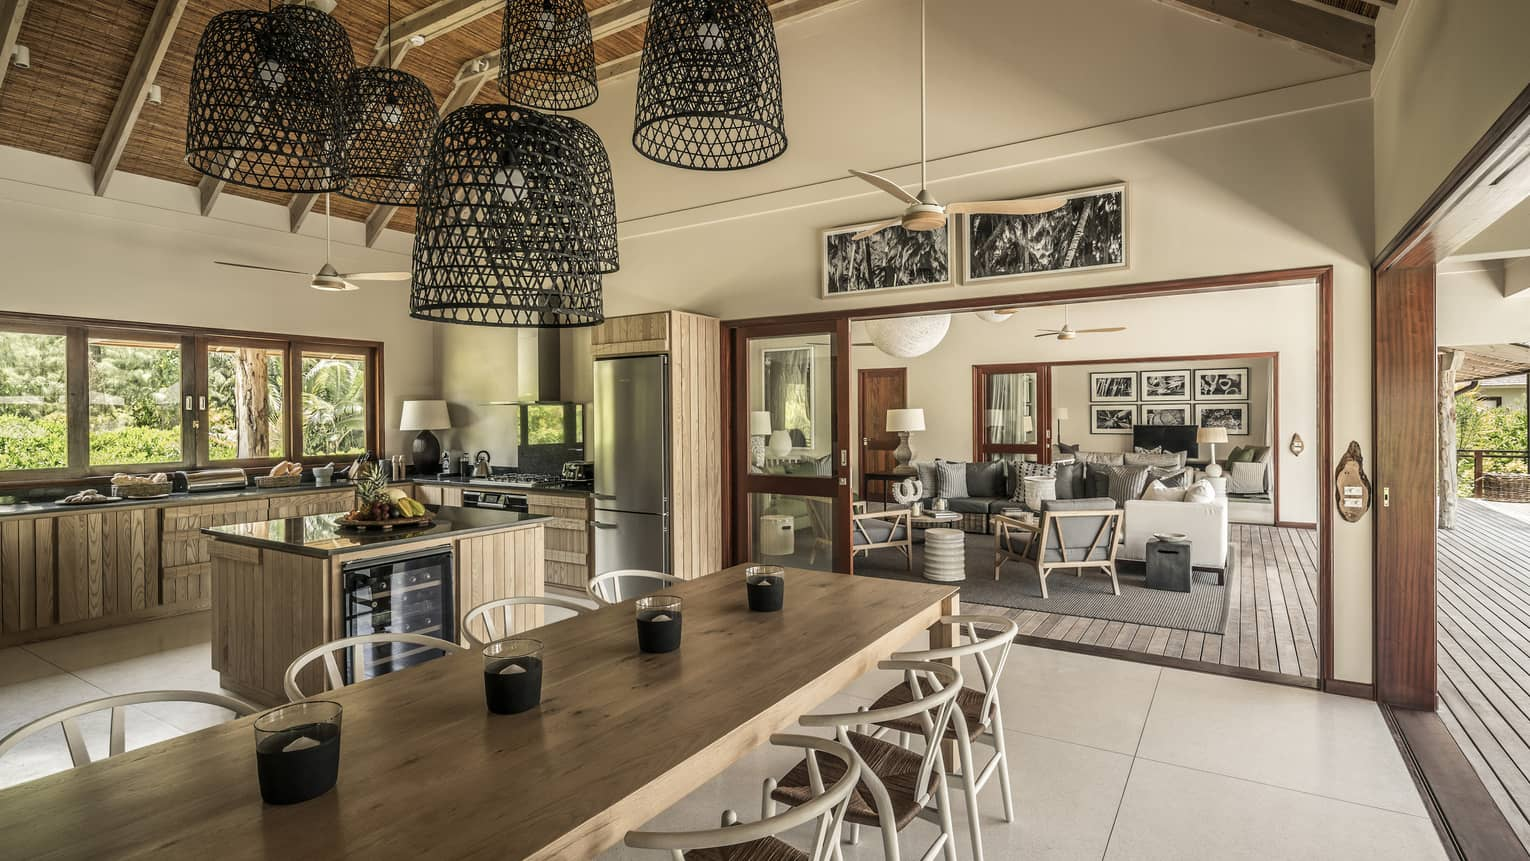 Large basket-like chandeliers hang from gambrel roof over long wood dining table, large kitchen